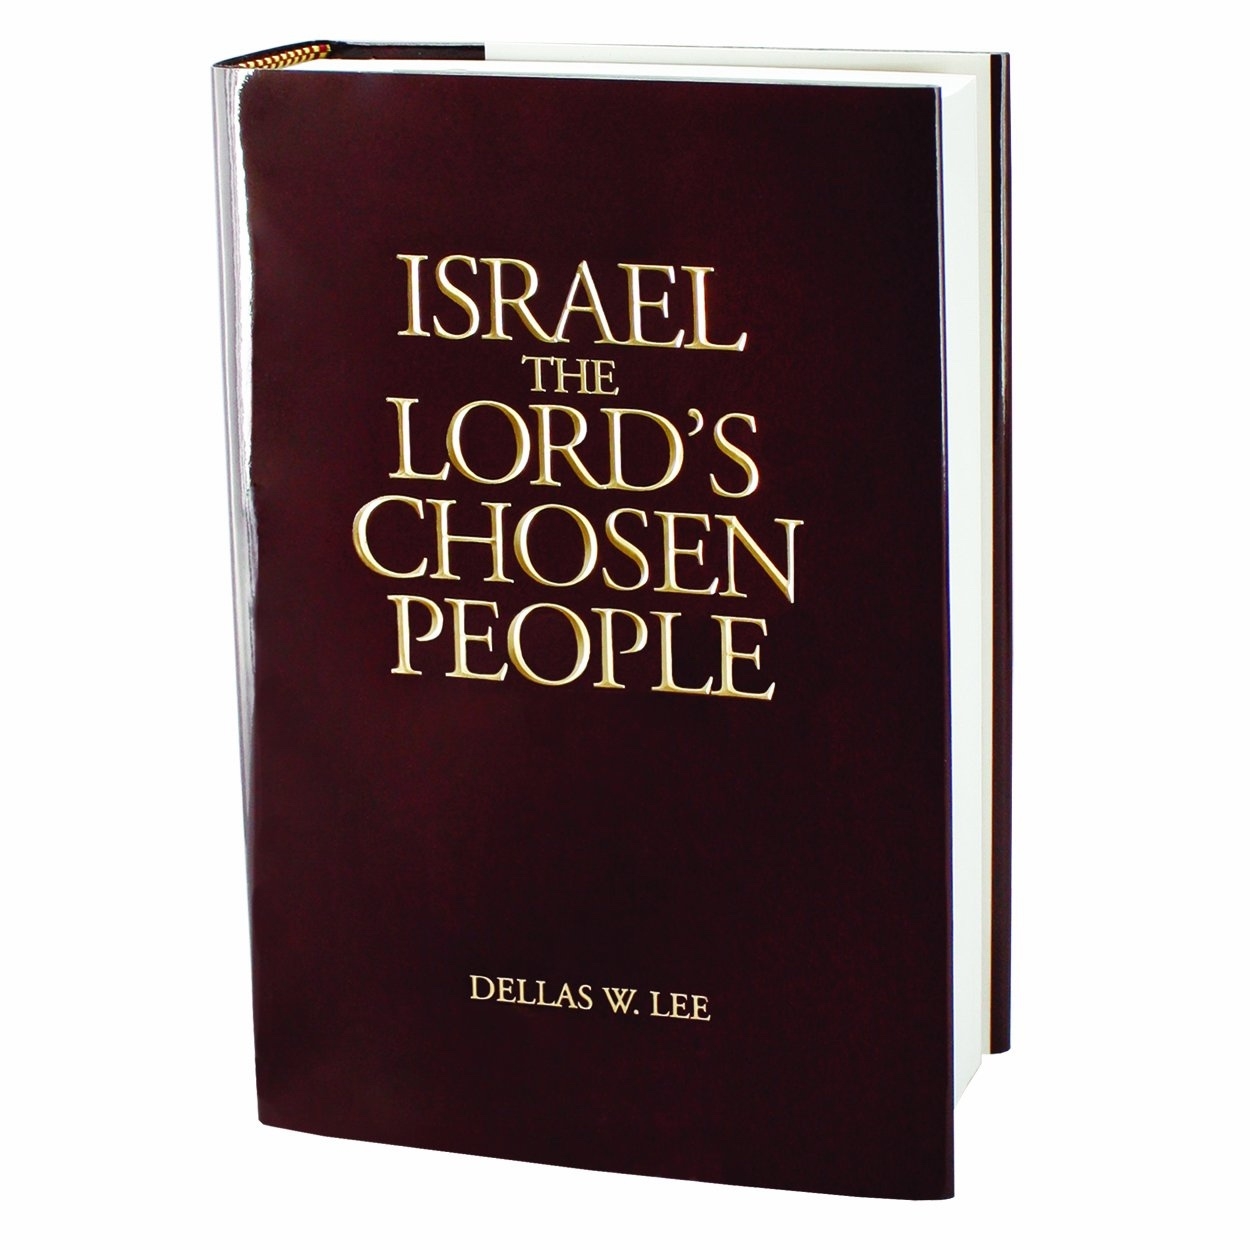 Israel, The Lord's Chosen People, Lee, Dellas W.